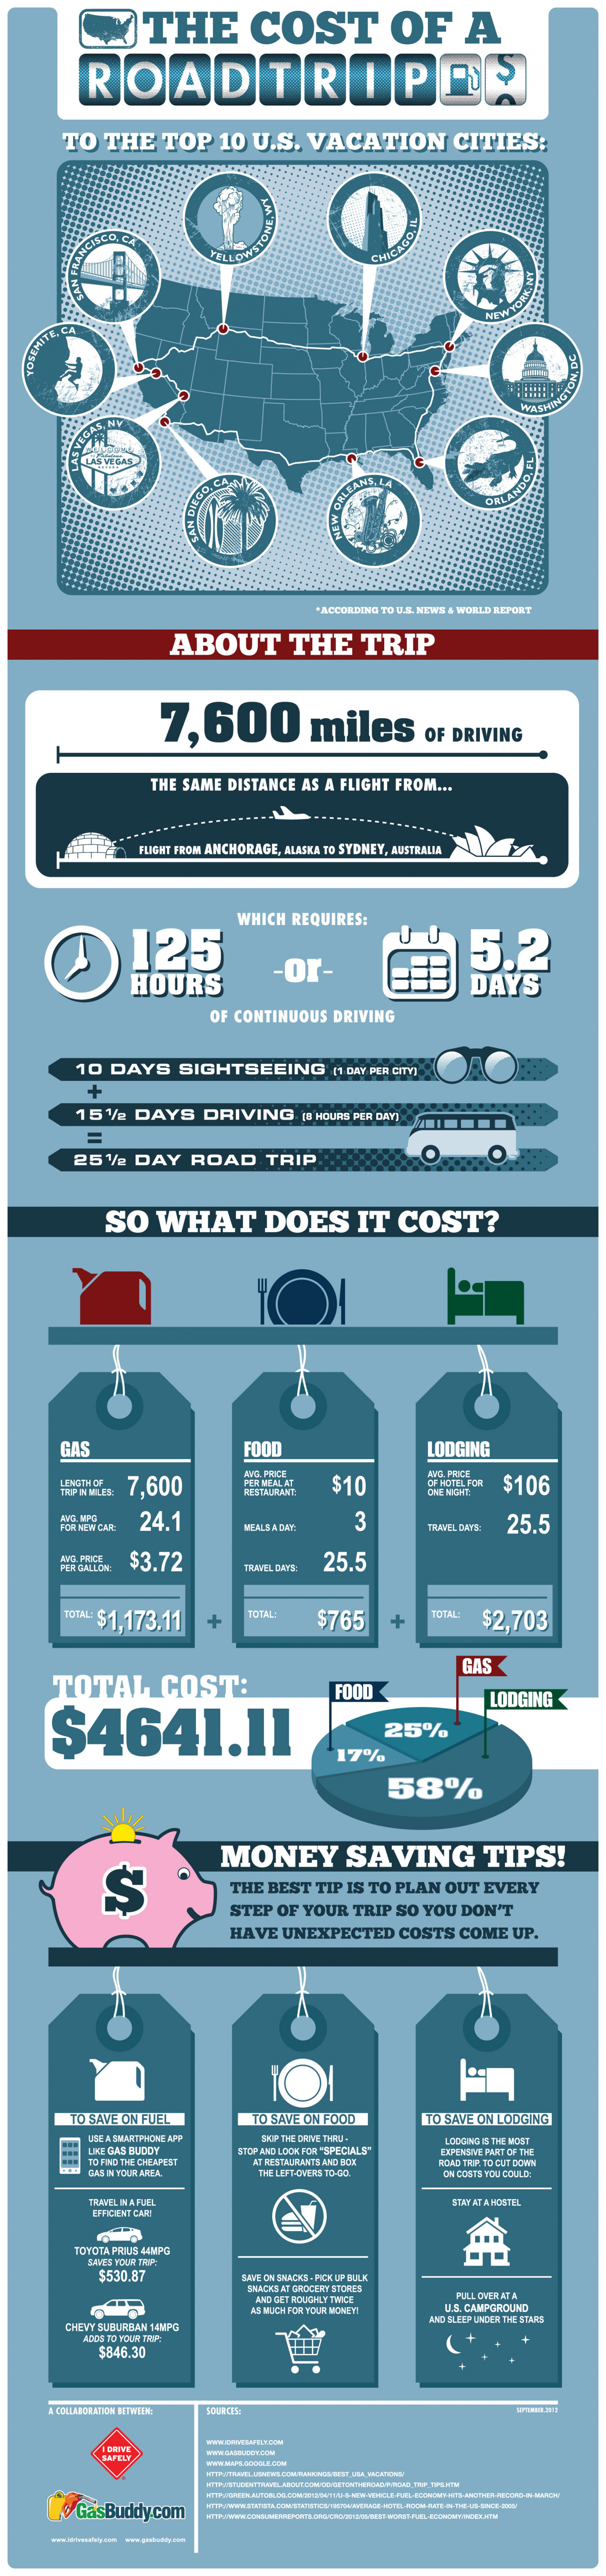 The Cost of a Road Trip to the Top 10 U.S. Vacation Cities Infographic